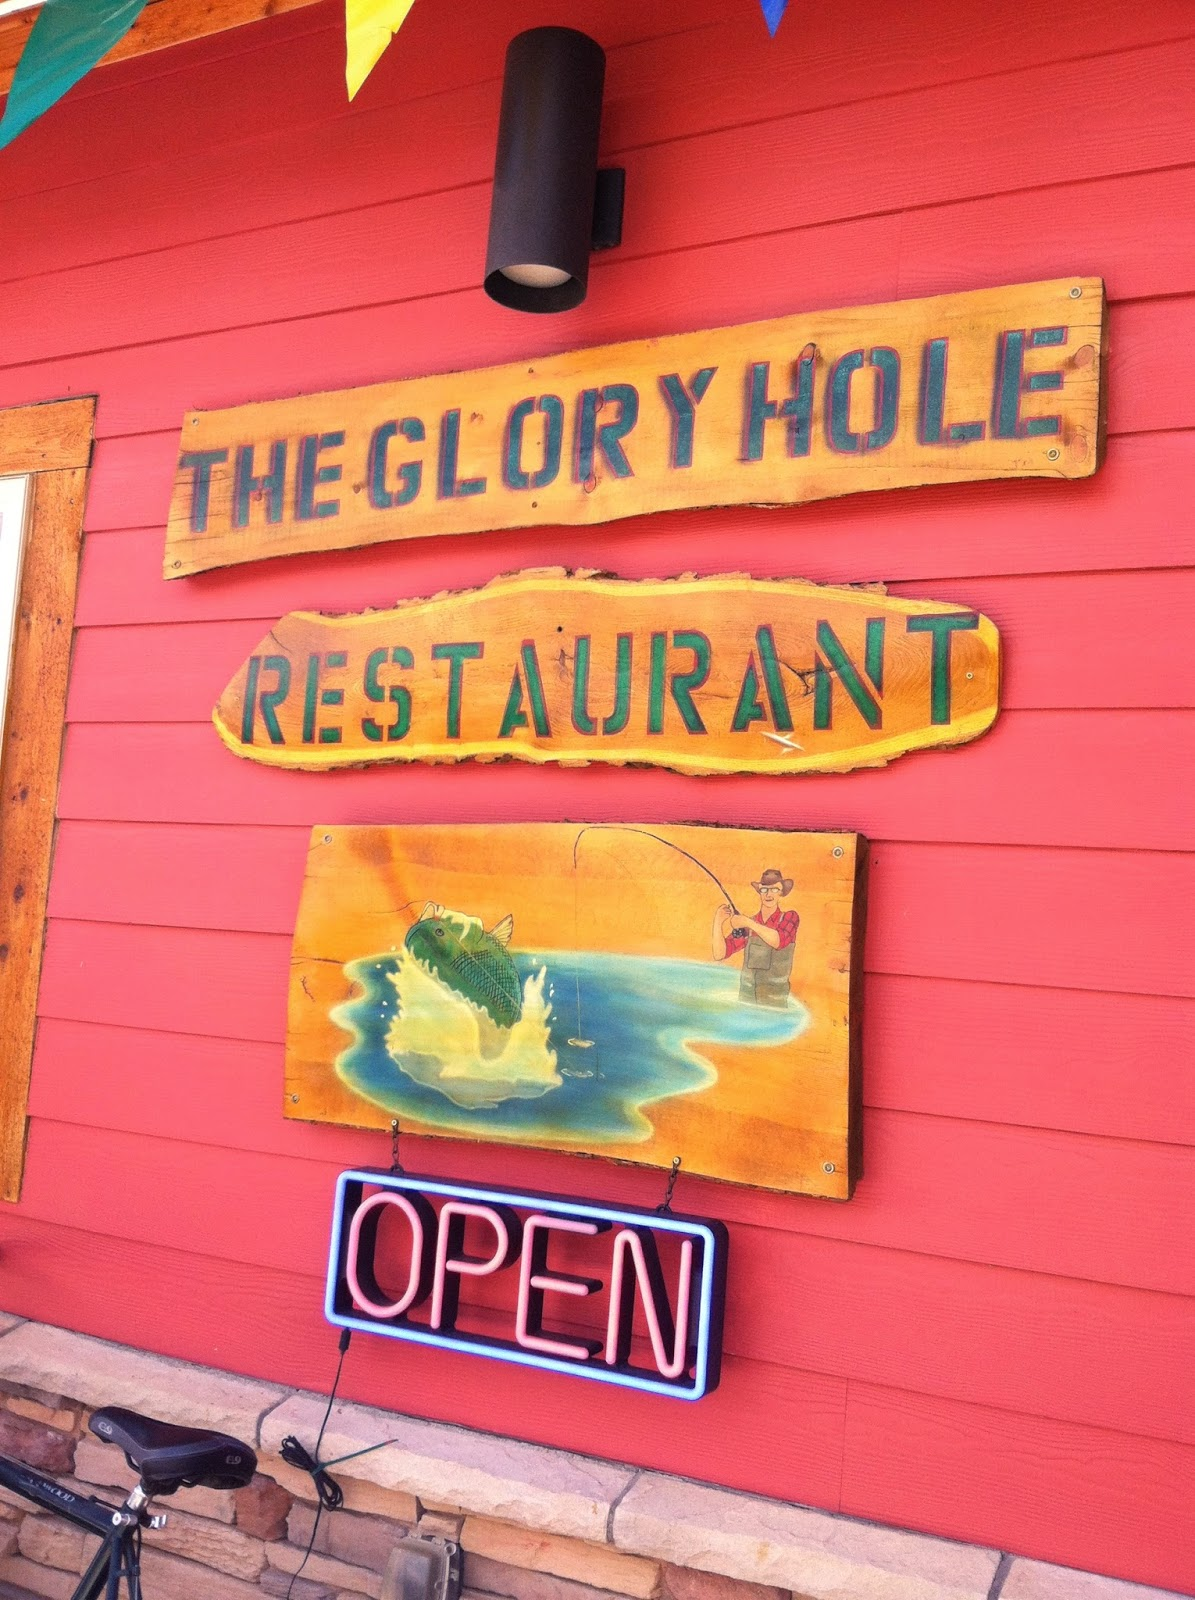 Valuable Glory hole colorao